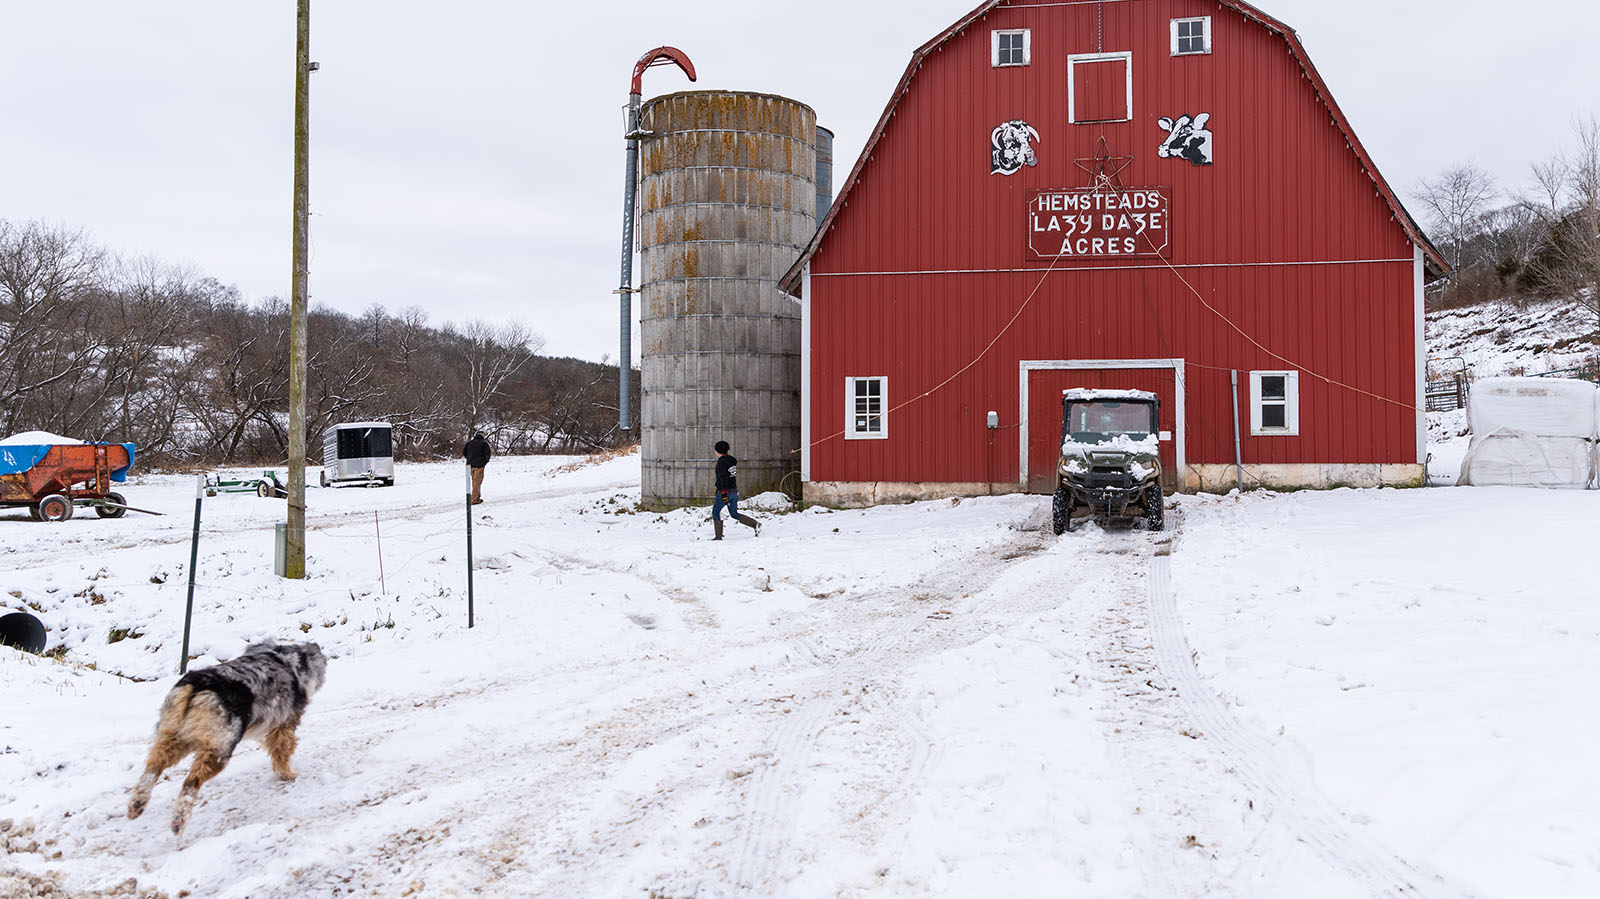 A farm dog runs through the snow to catch up to Kristina walking around the beautiful red milking parlor with a sign reading Lazy Daze Acres on the wall.